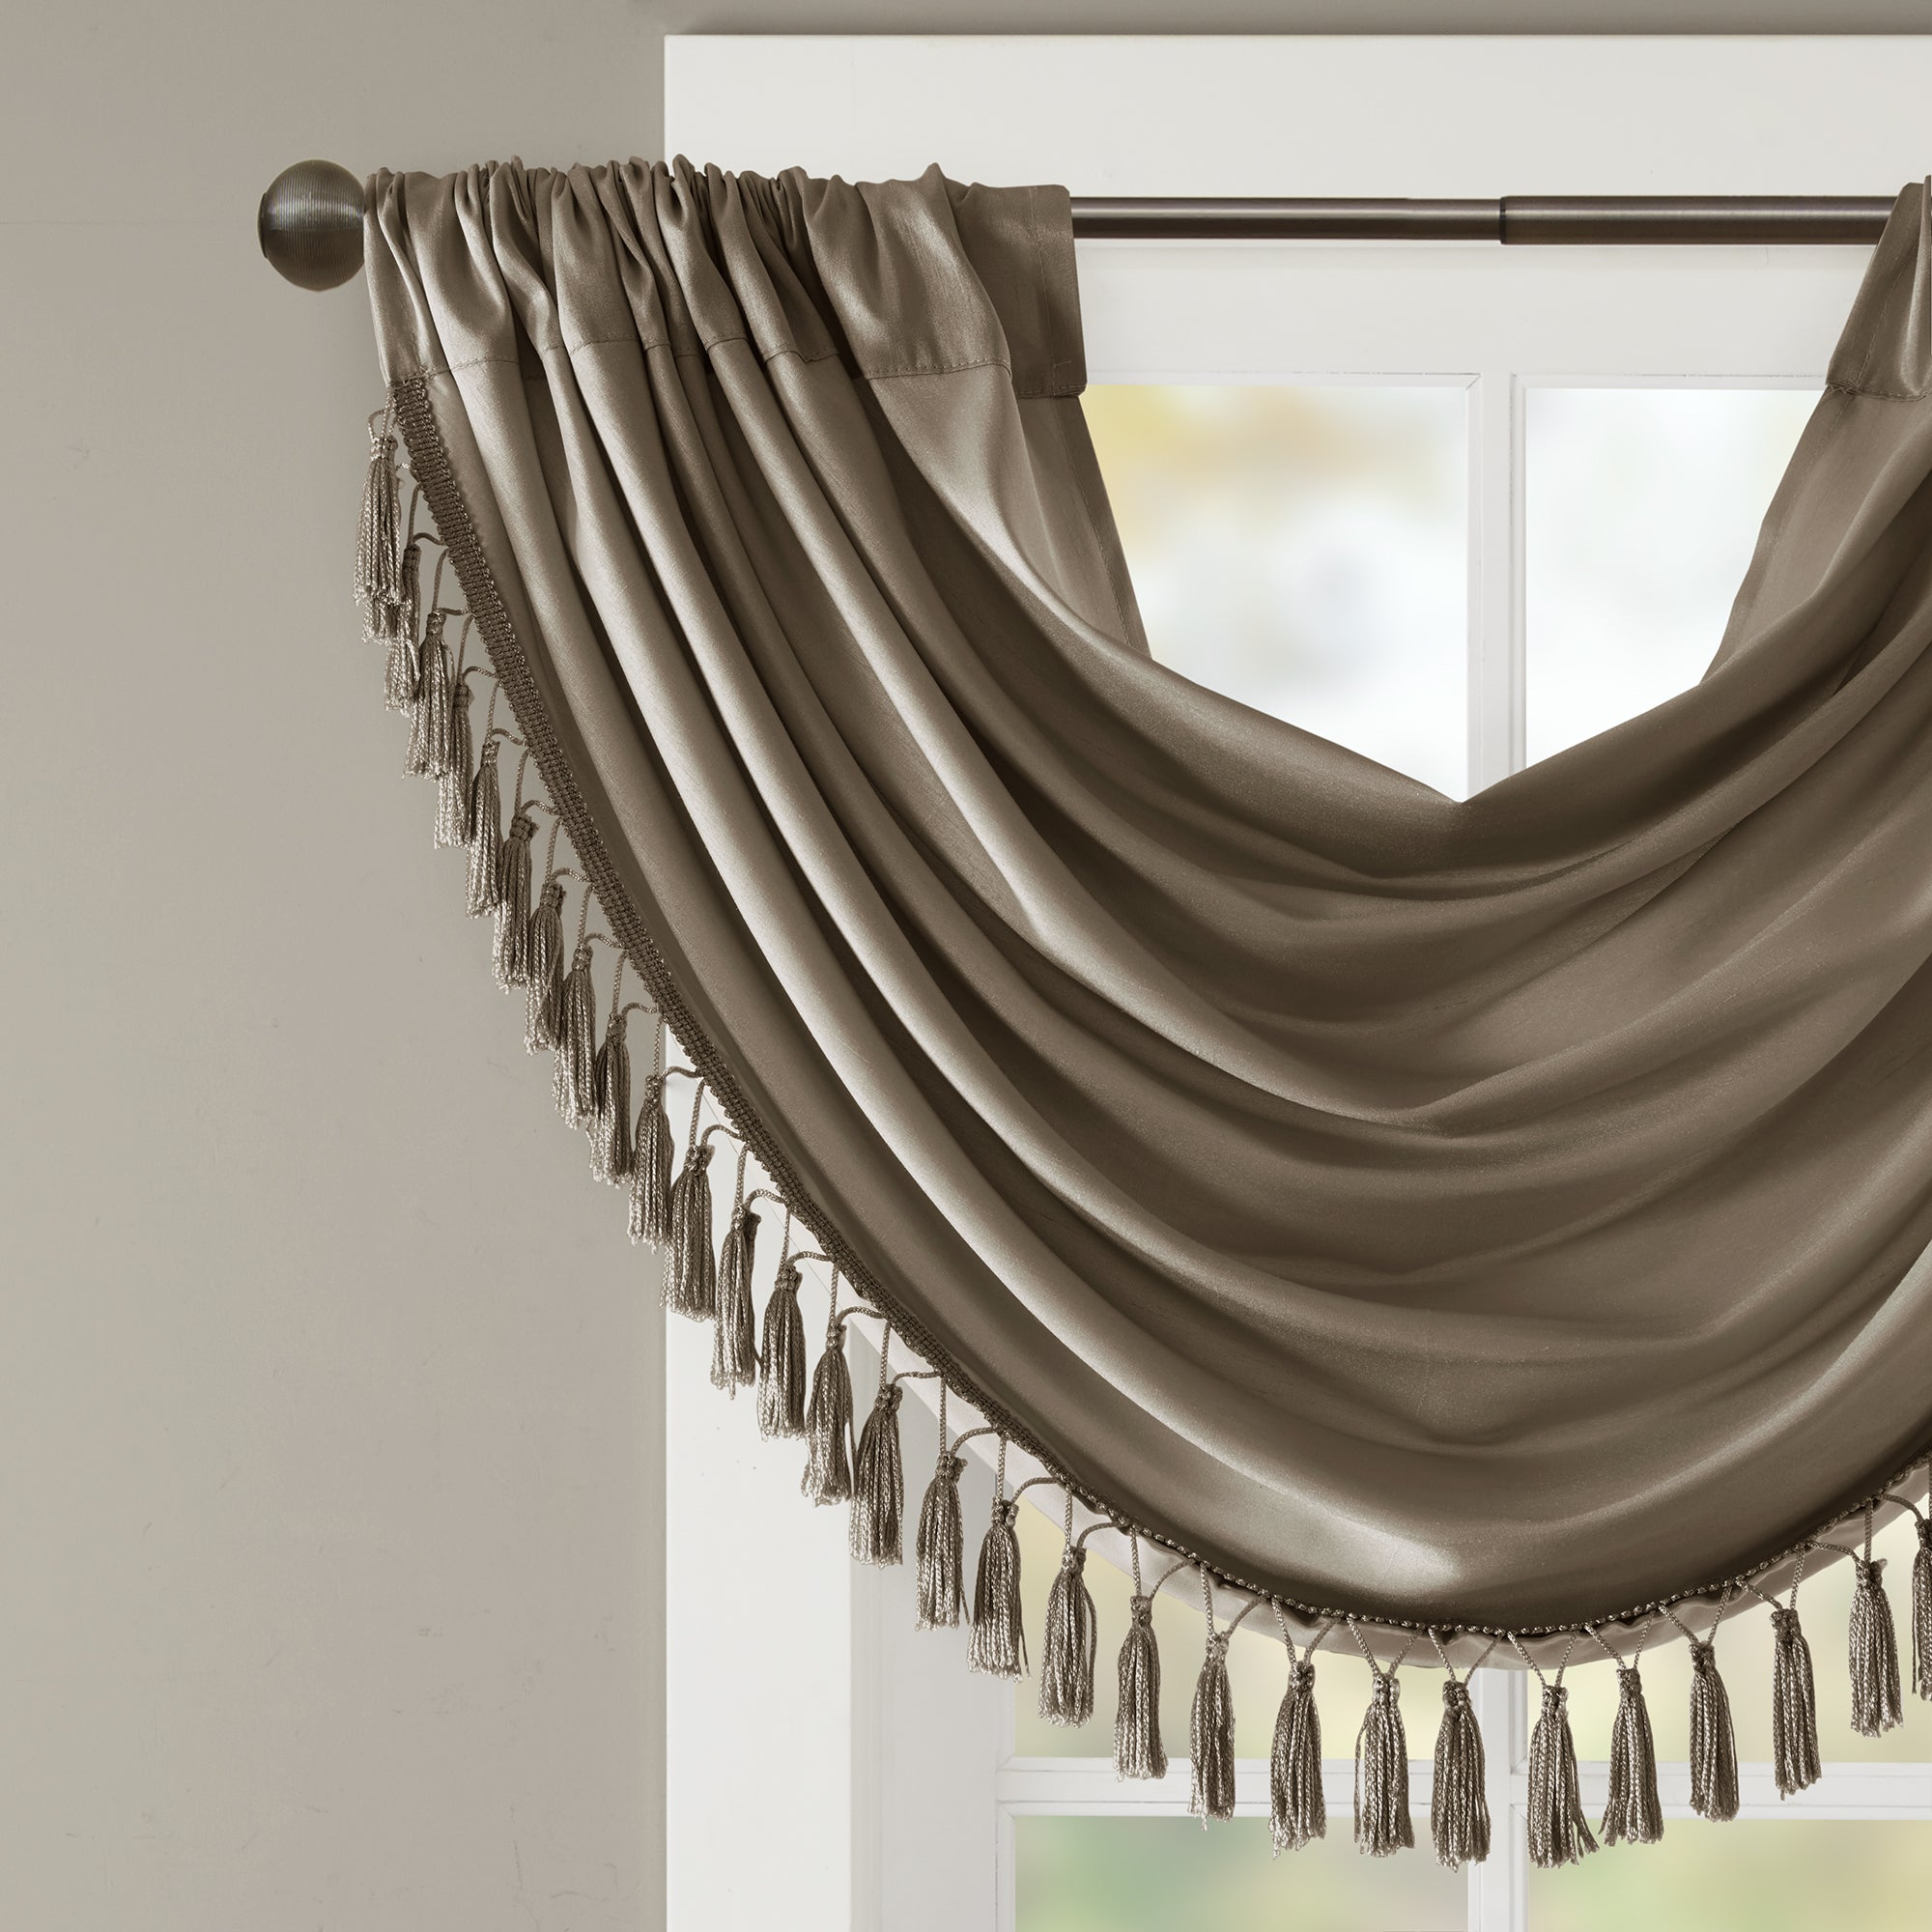 chester lined madison pocket window rod shipping overstock and park valances pintuck finish product home garden orders valance over with on pieced free